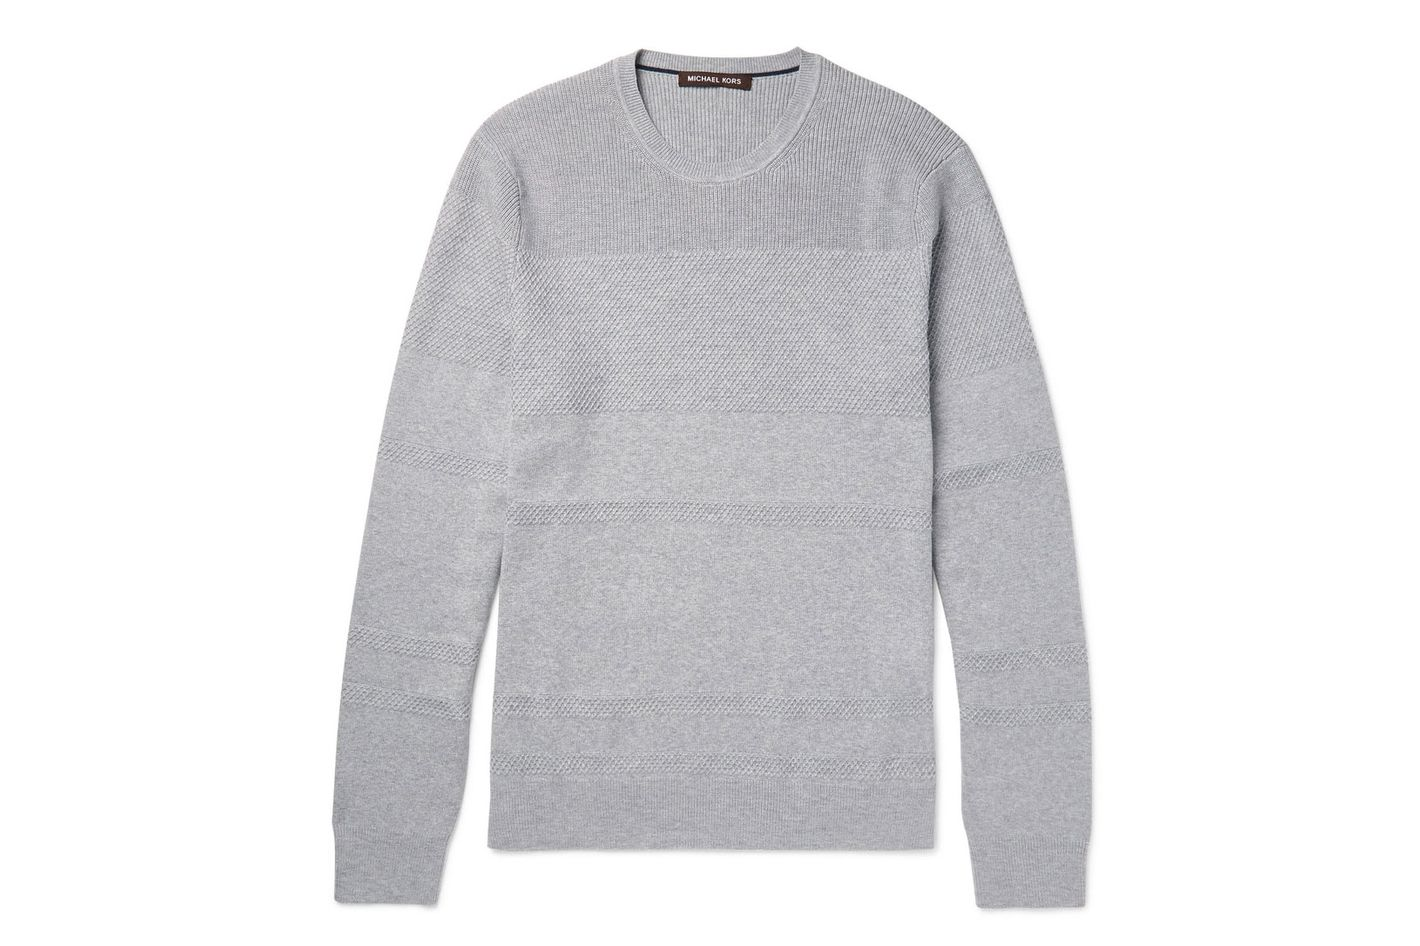 Michael Kors Merino Wool Crewneck Sweater